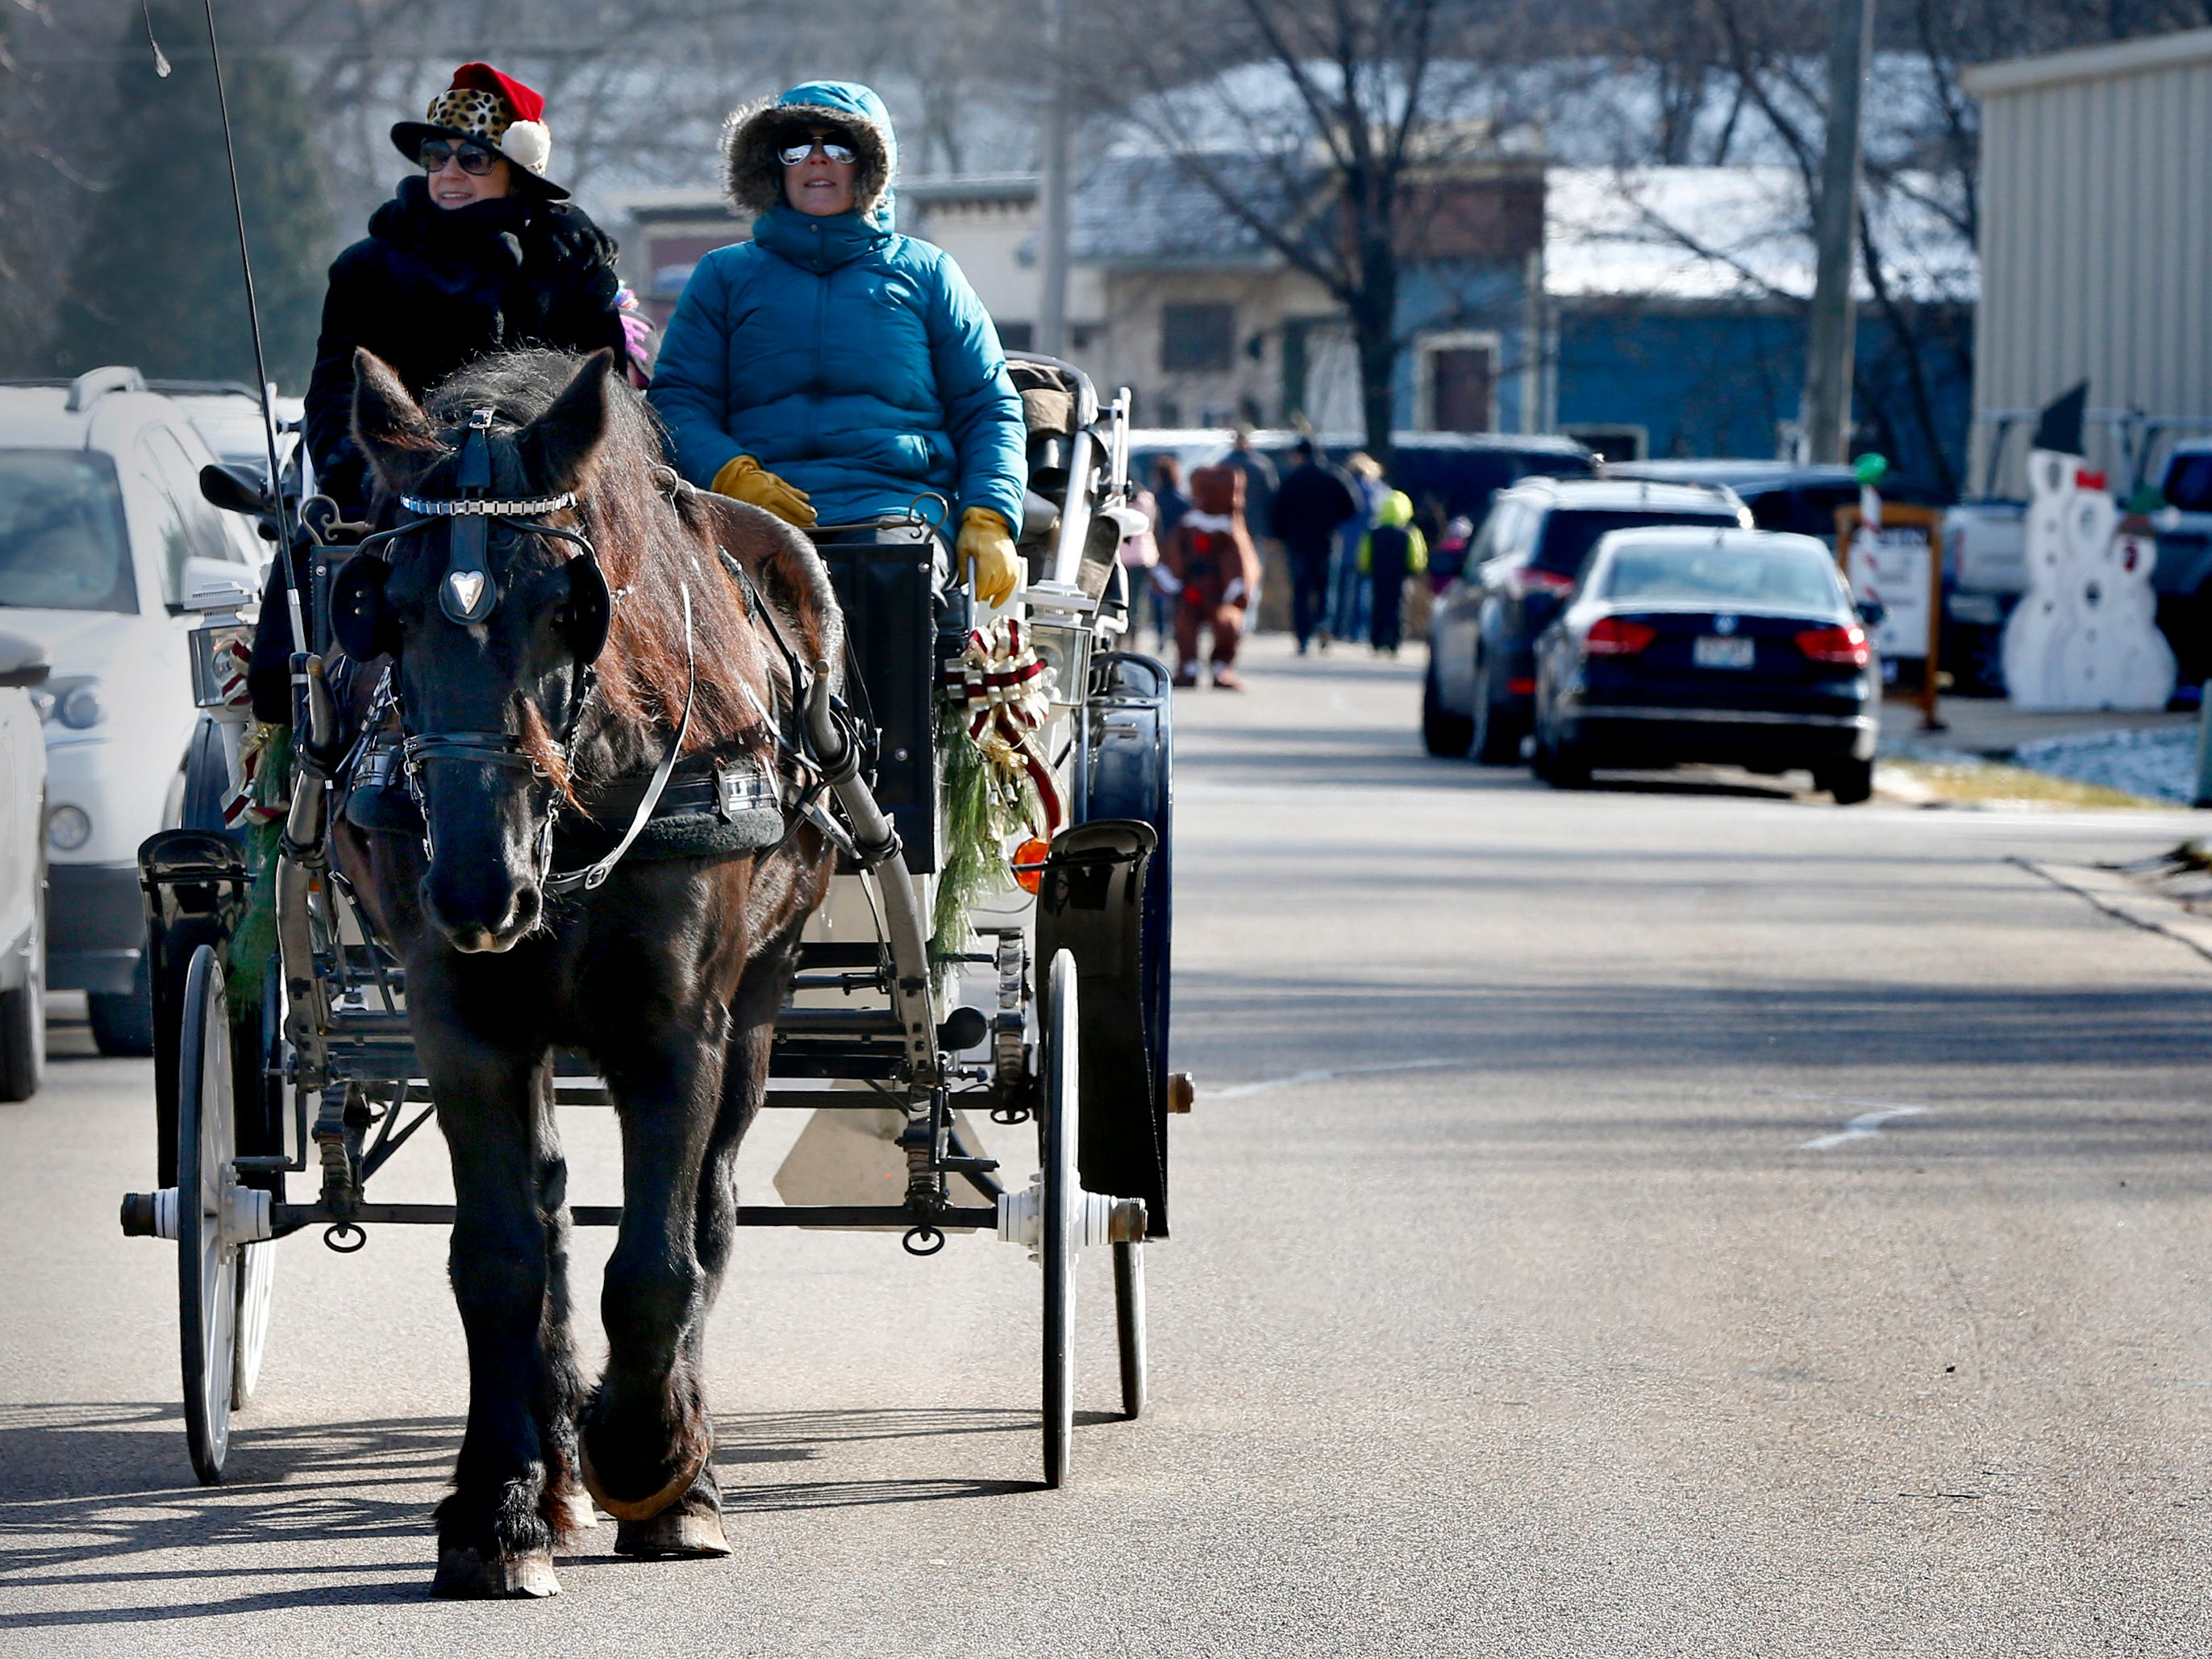 A horse-drawn carriage rolls along James Street offering visitors rides during Christmas in Wales on Dec. 8.